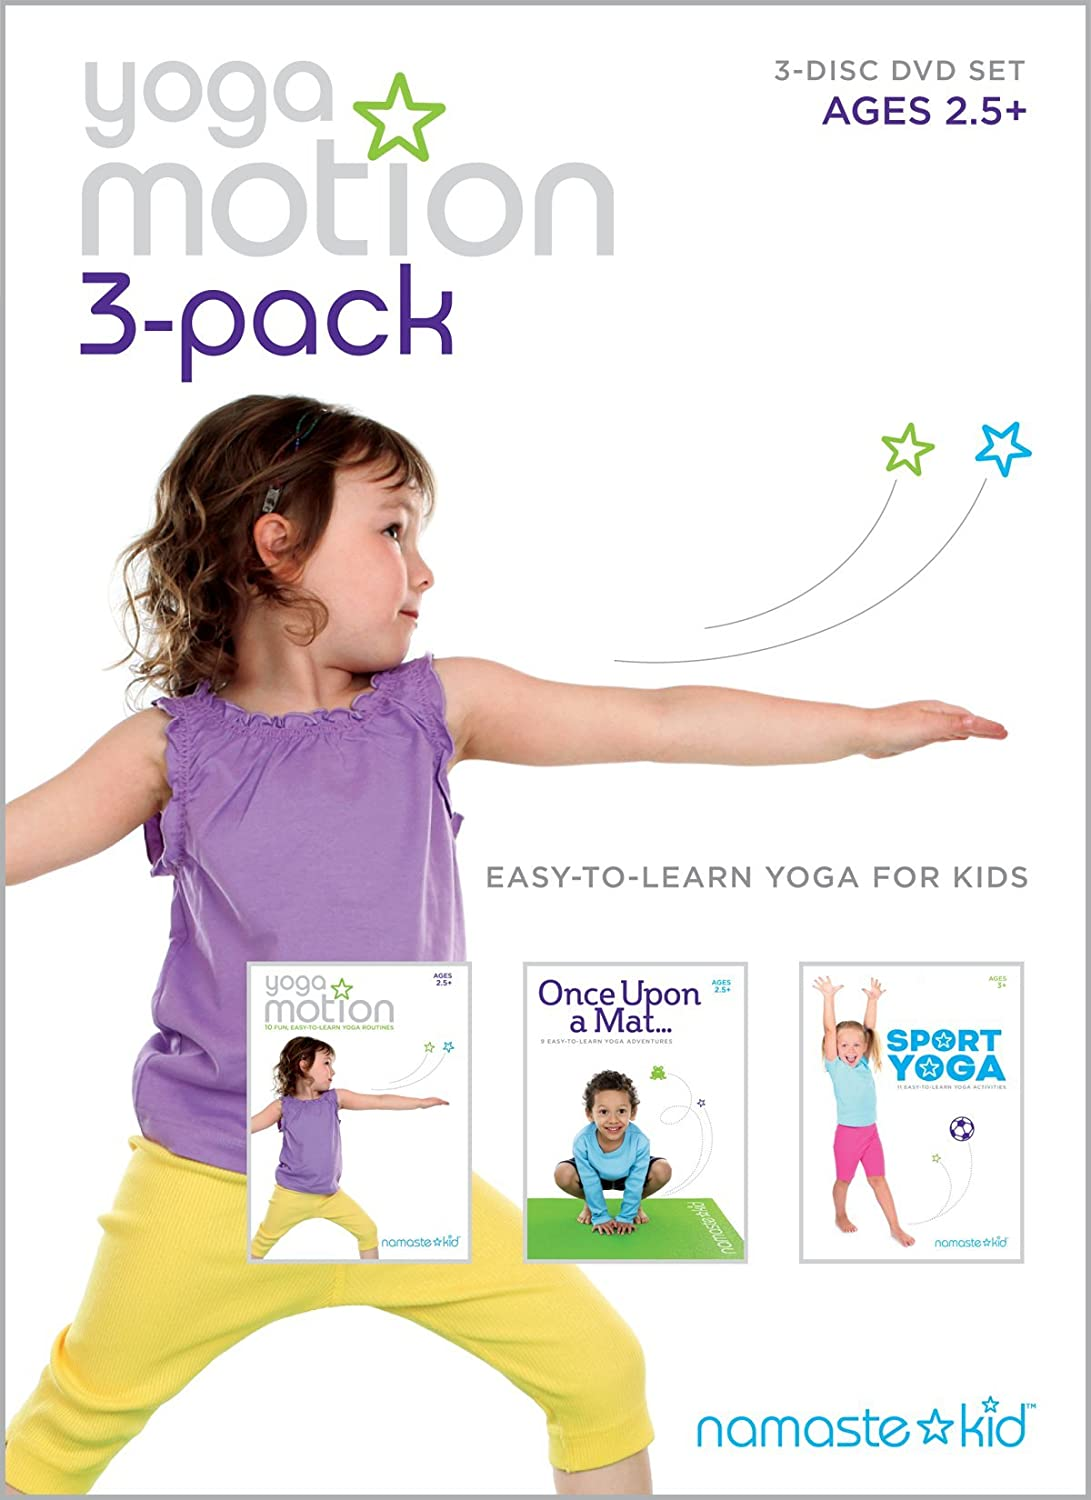 Yoga Motion 3-pack - Kids Yoga DVD 3-disc Set: Amazon.es: Cine y ...